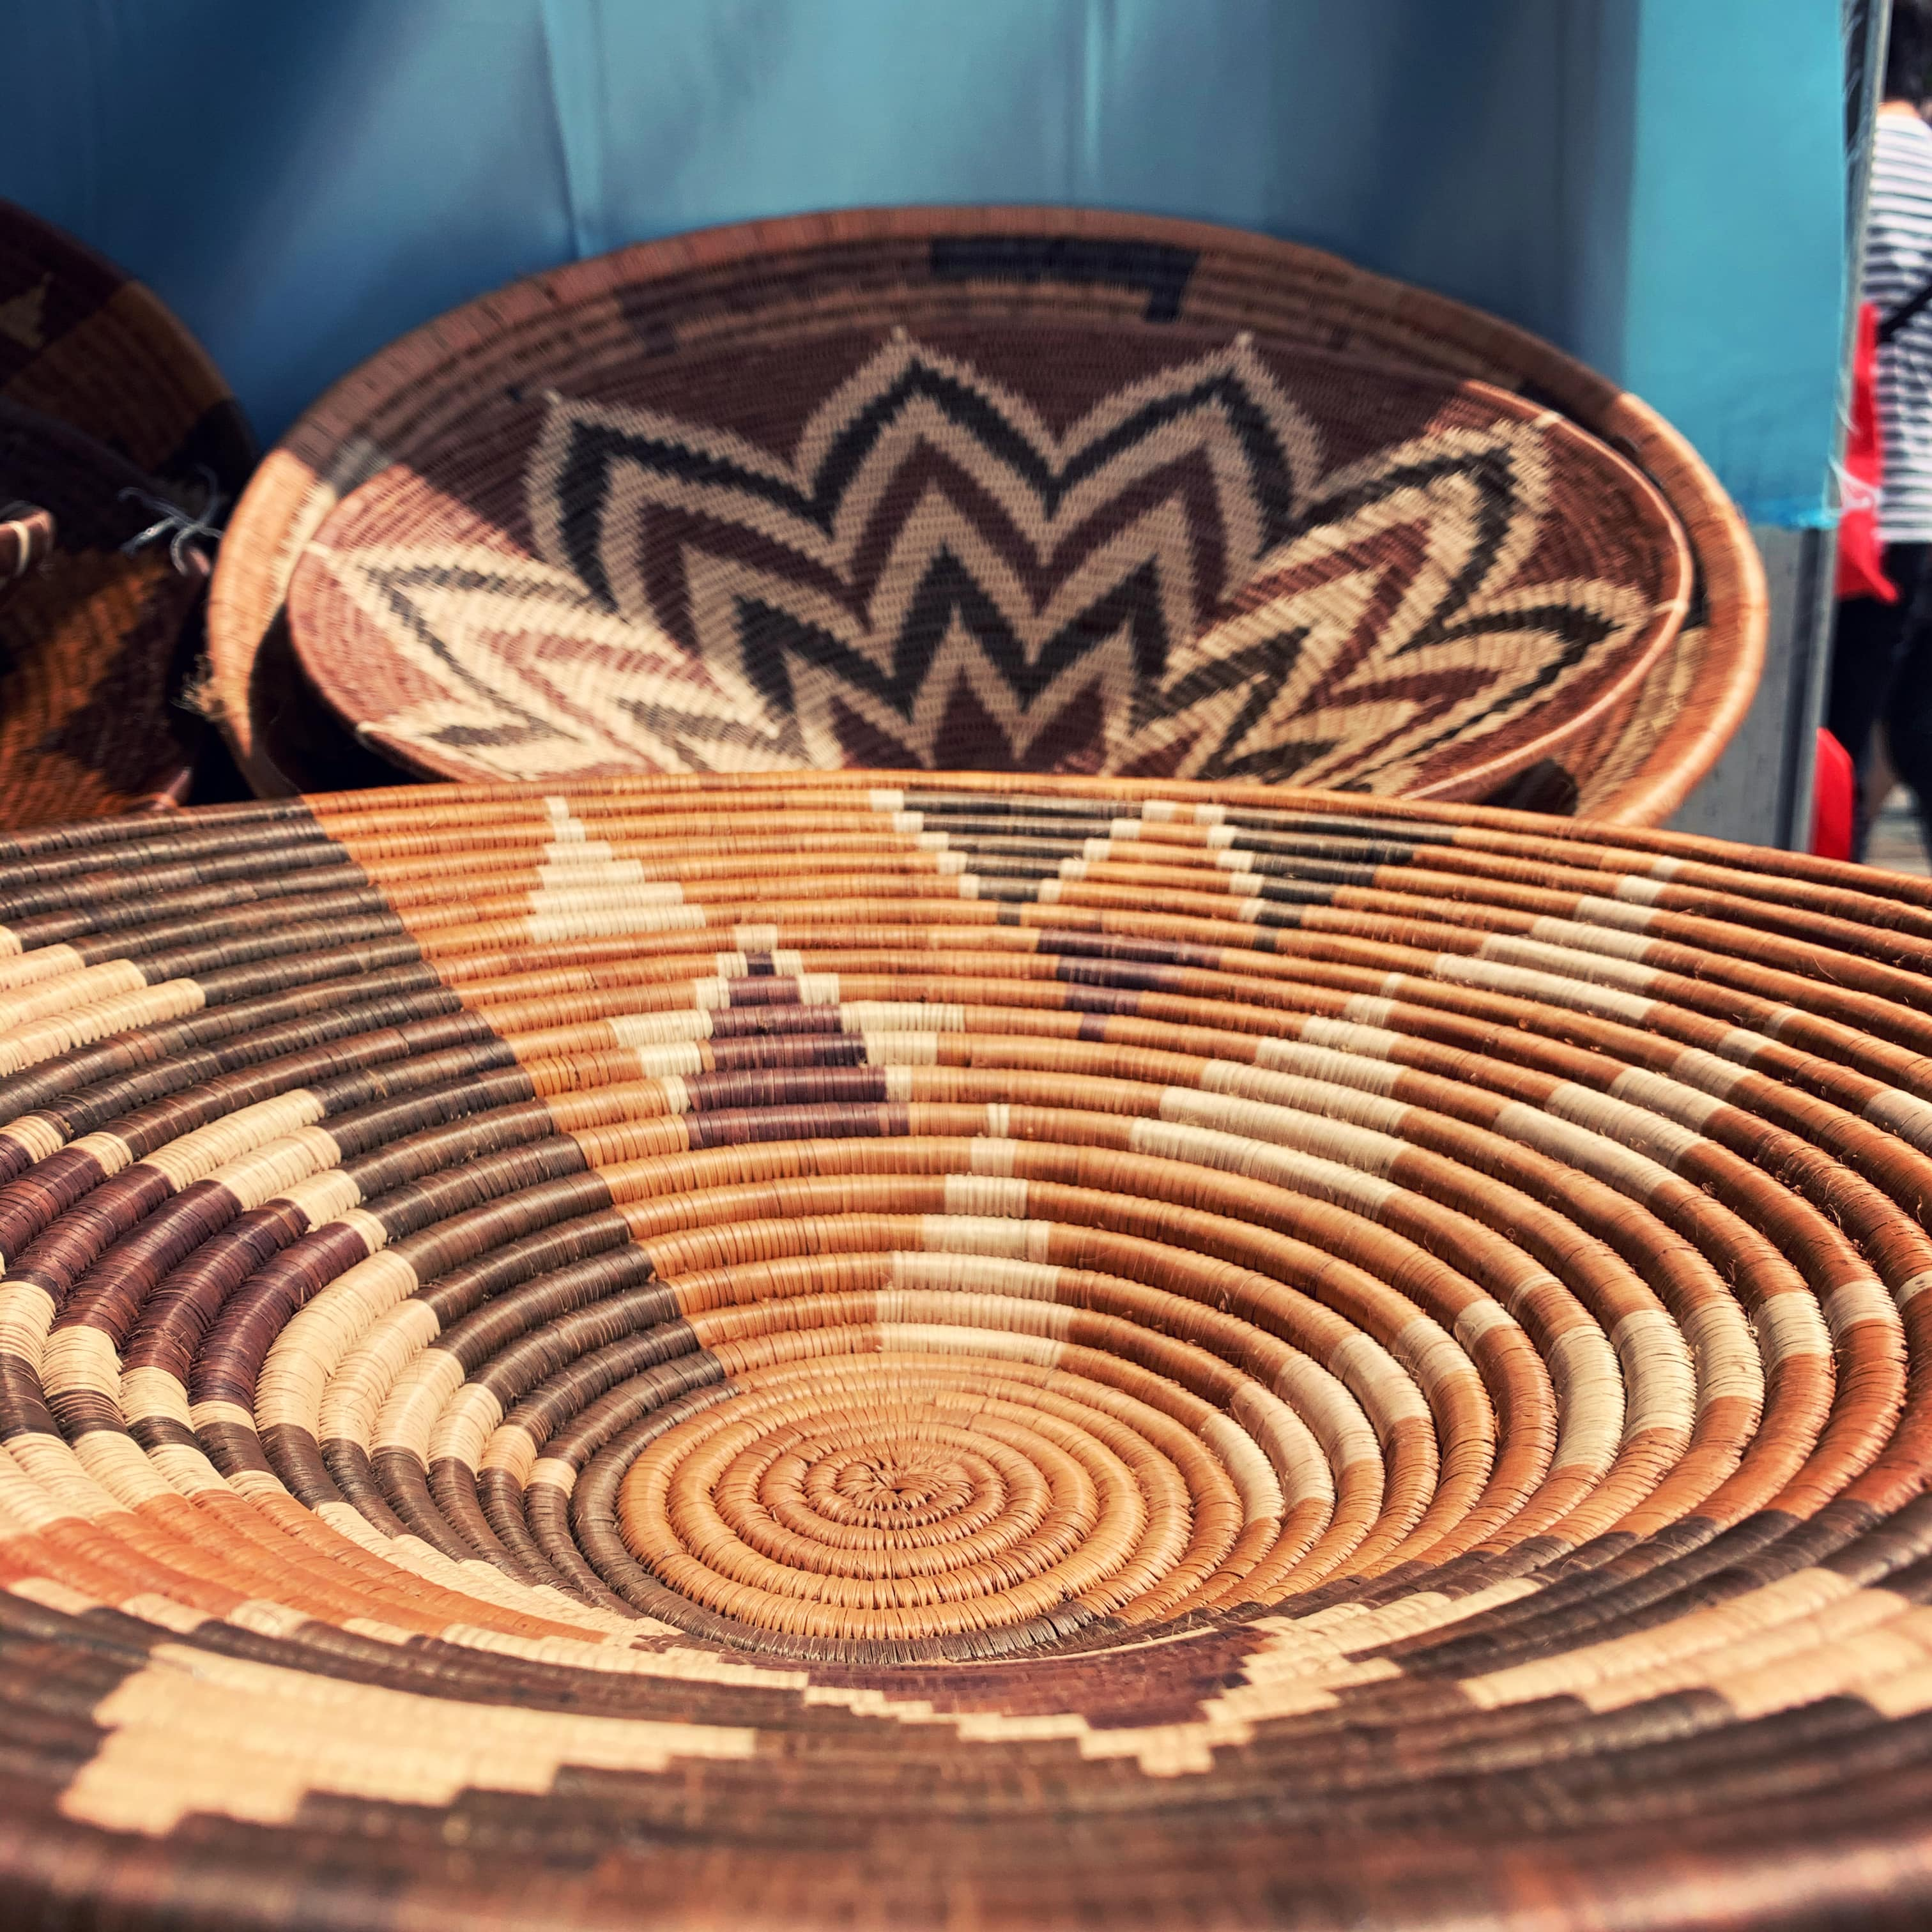 Hand woven basket at National Multicultural Festival